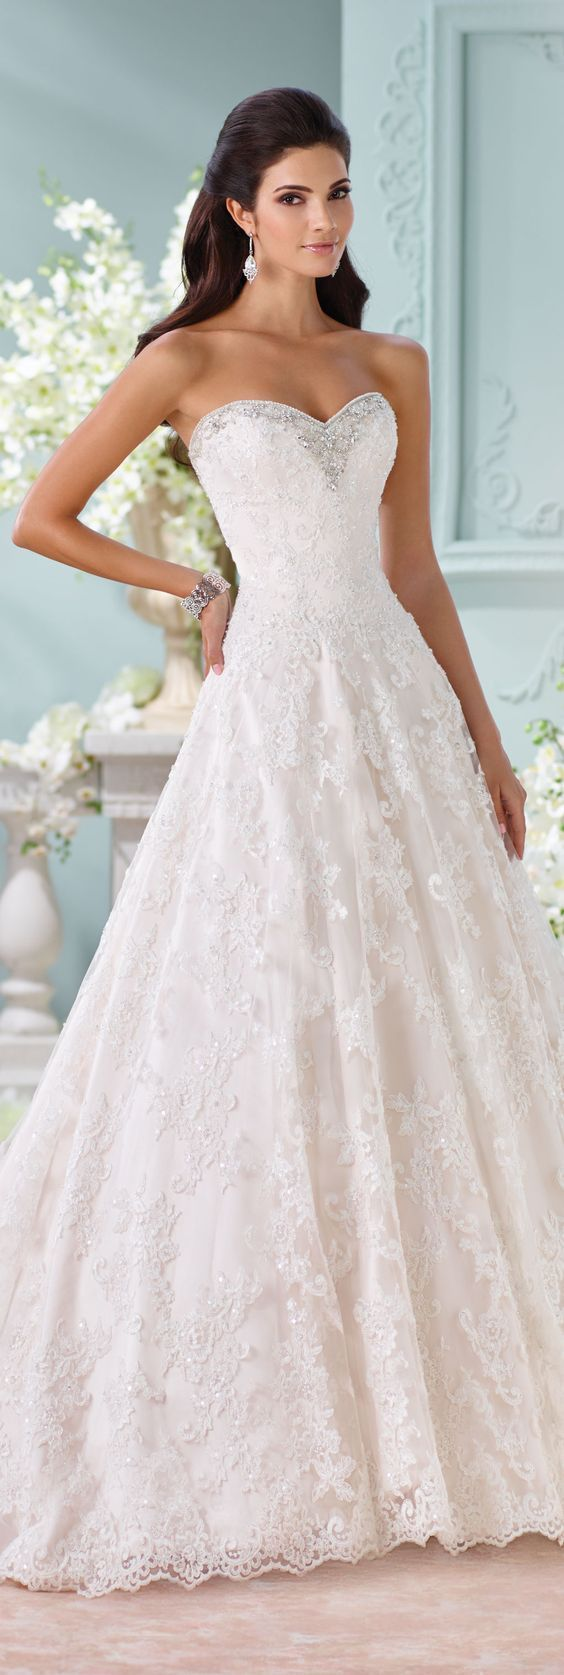 David Tutera for Mon Cheri Spring 2016 Sweetheart A-line Wedding Dress #weddingdress